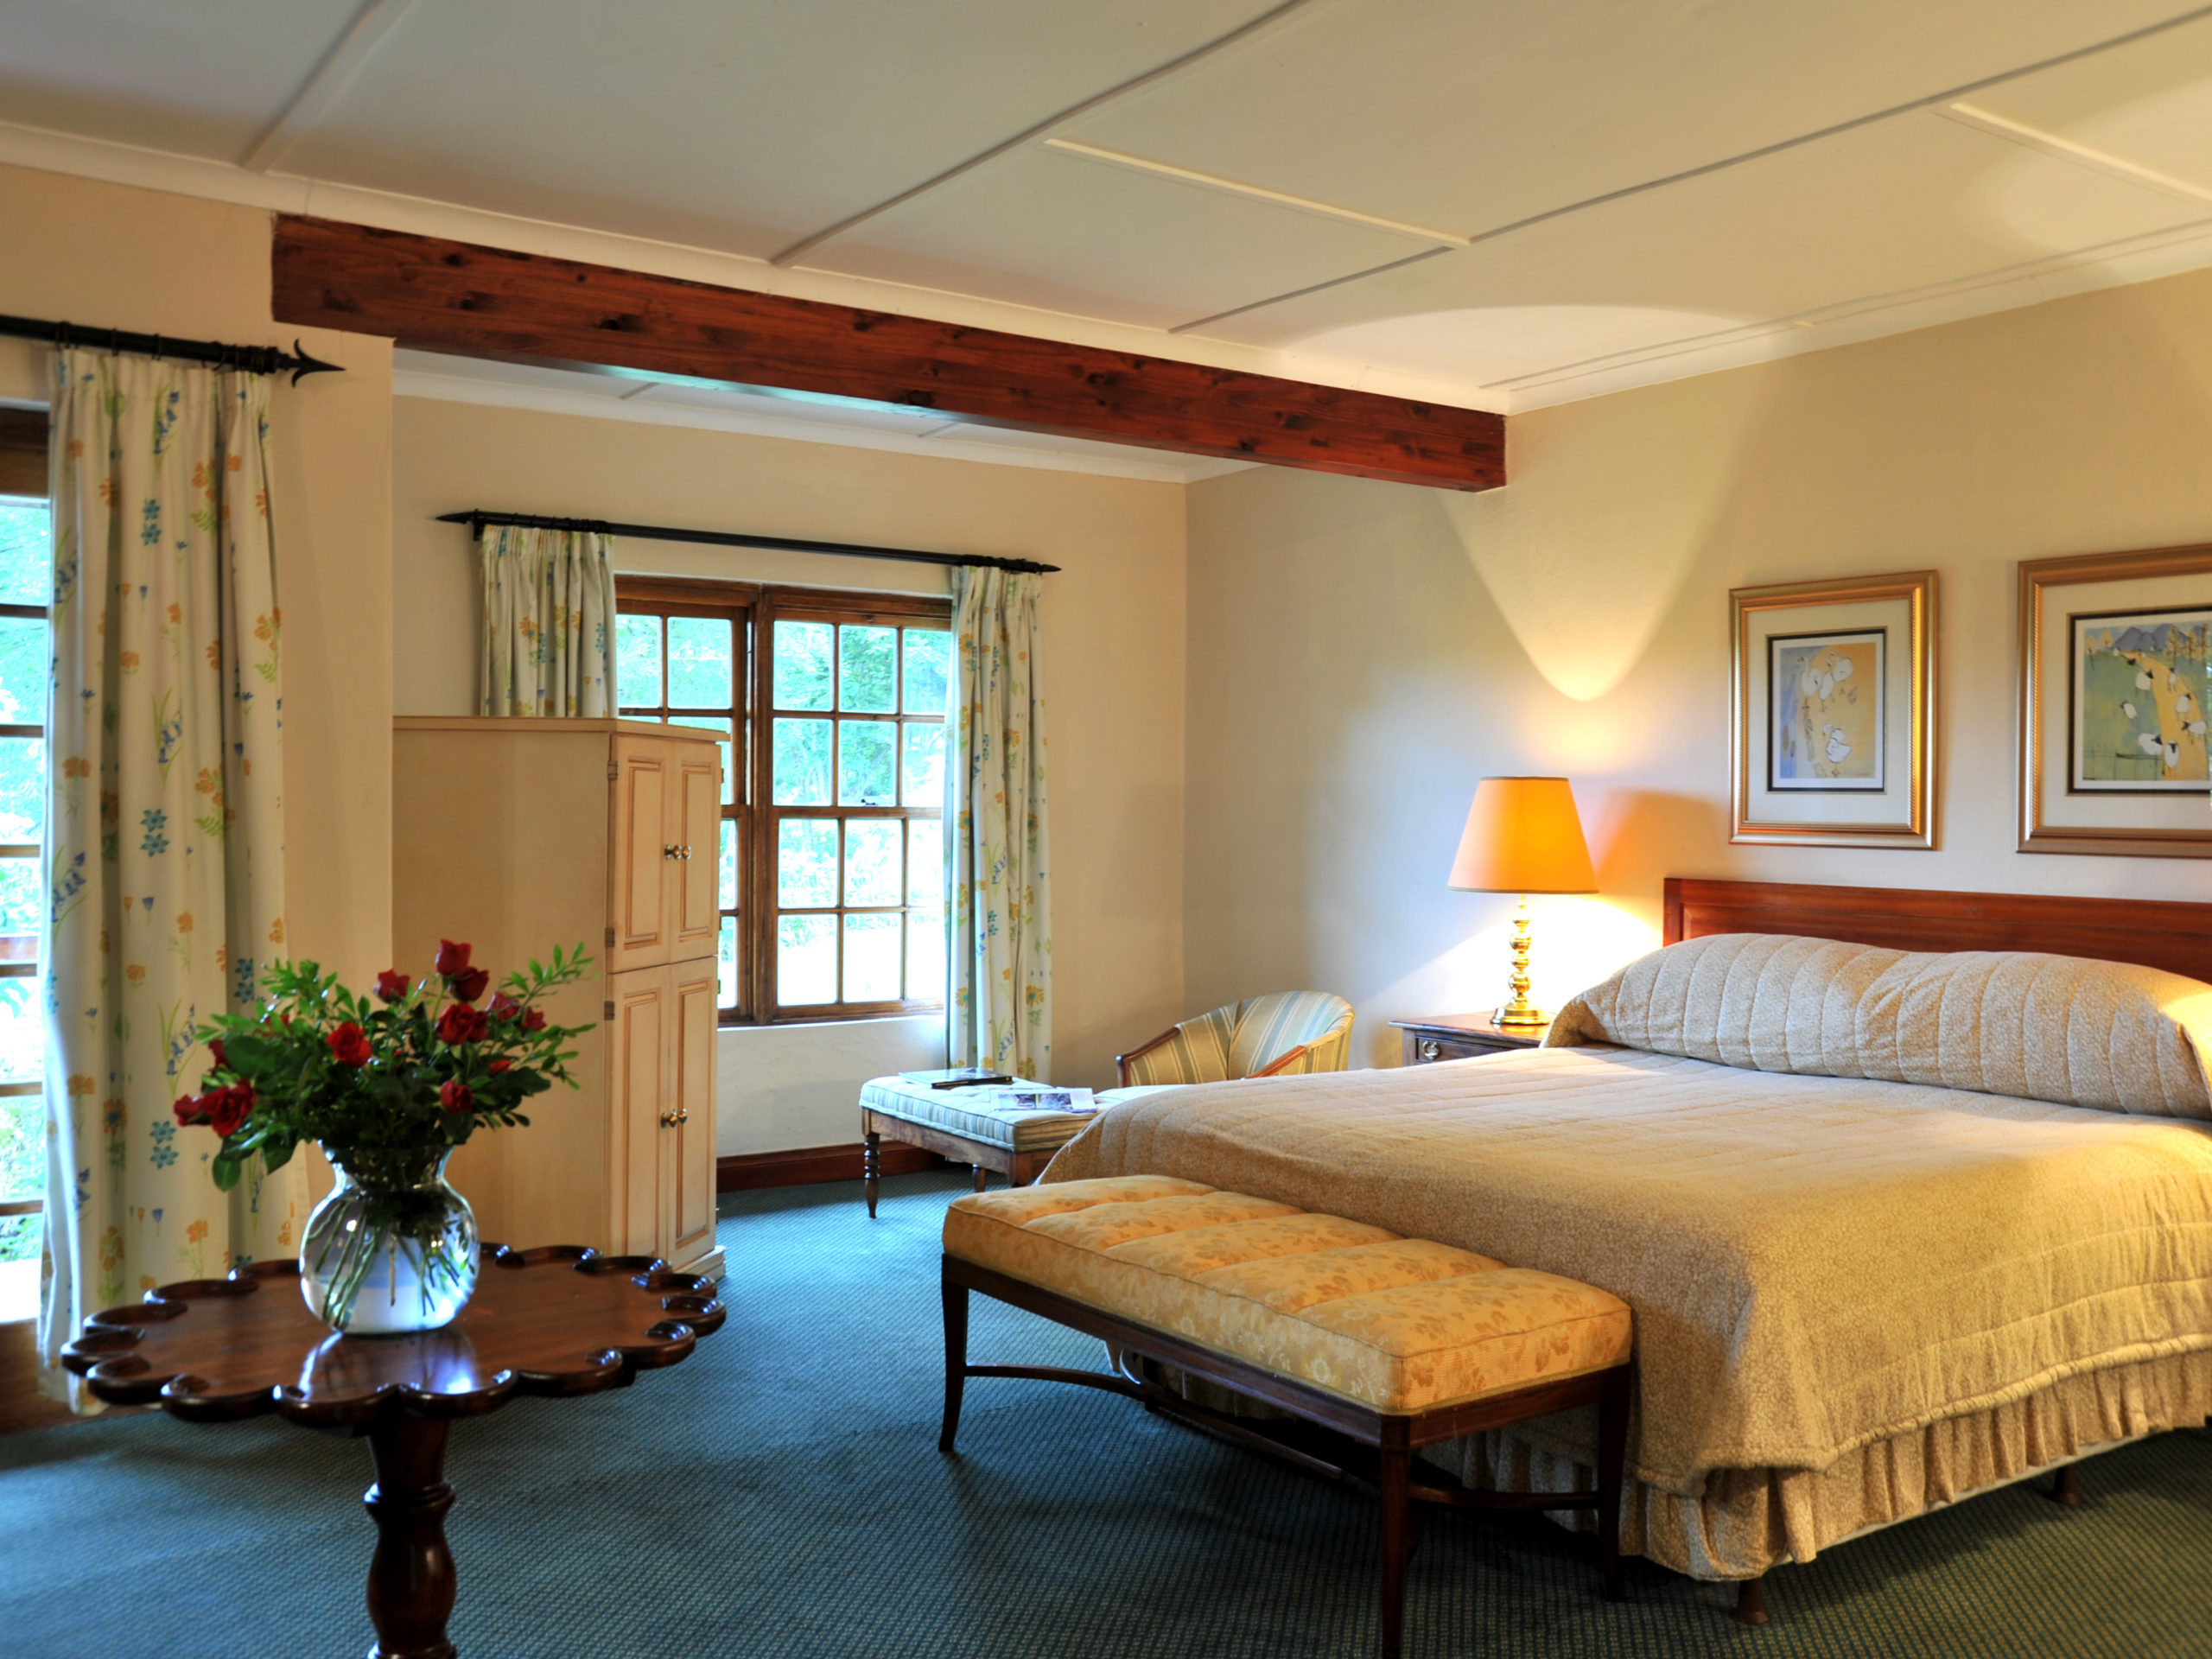 COACH HOUSE HOTEL & SPA OVERNIGHT SPA PACKAGE FOR 2 ...